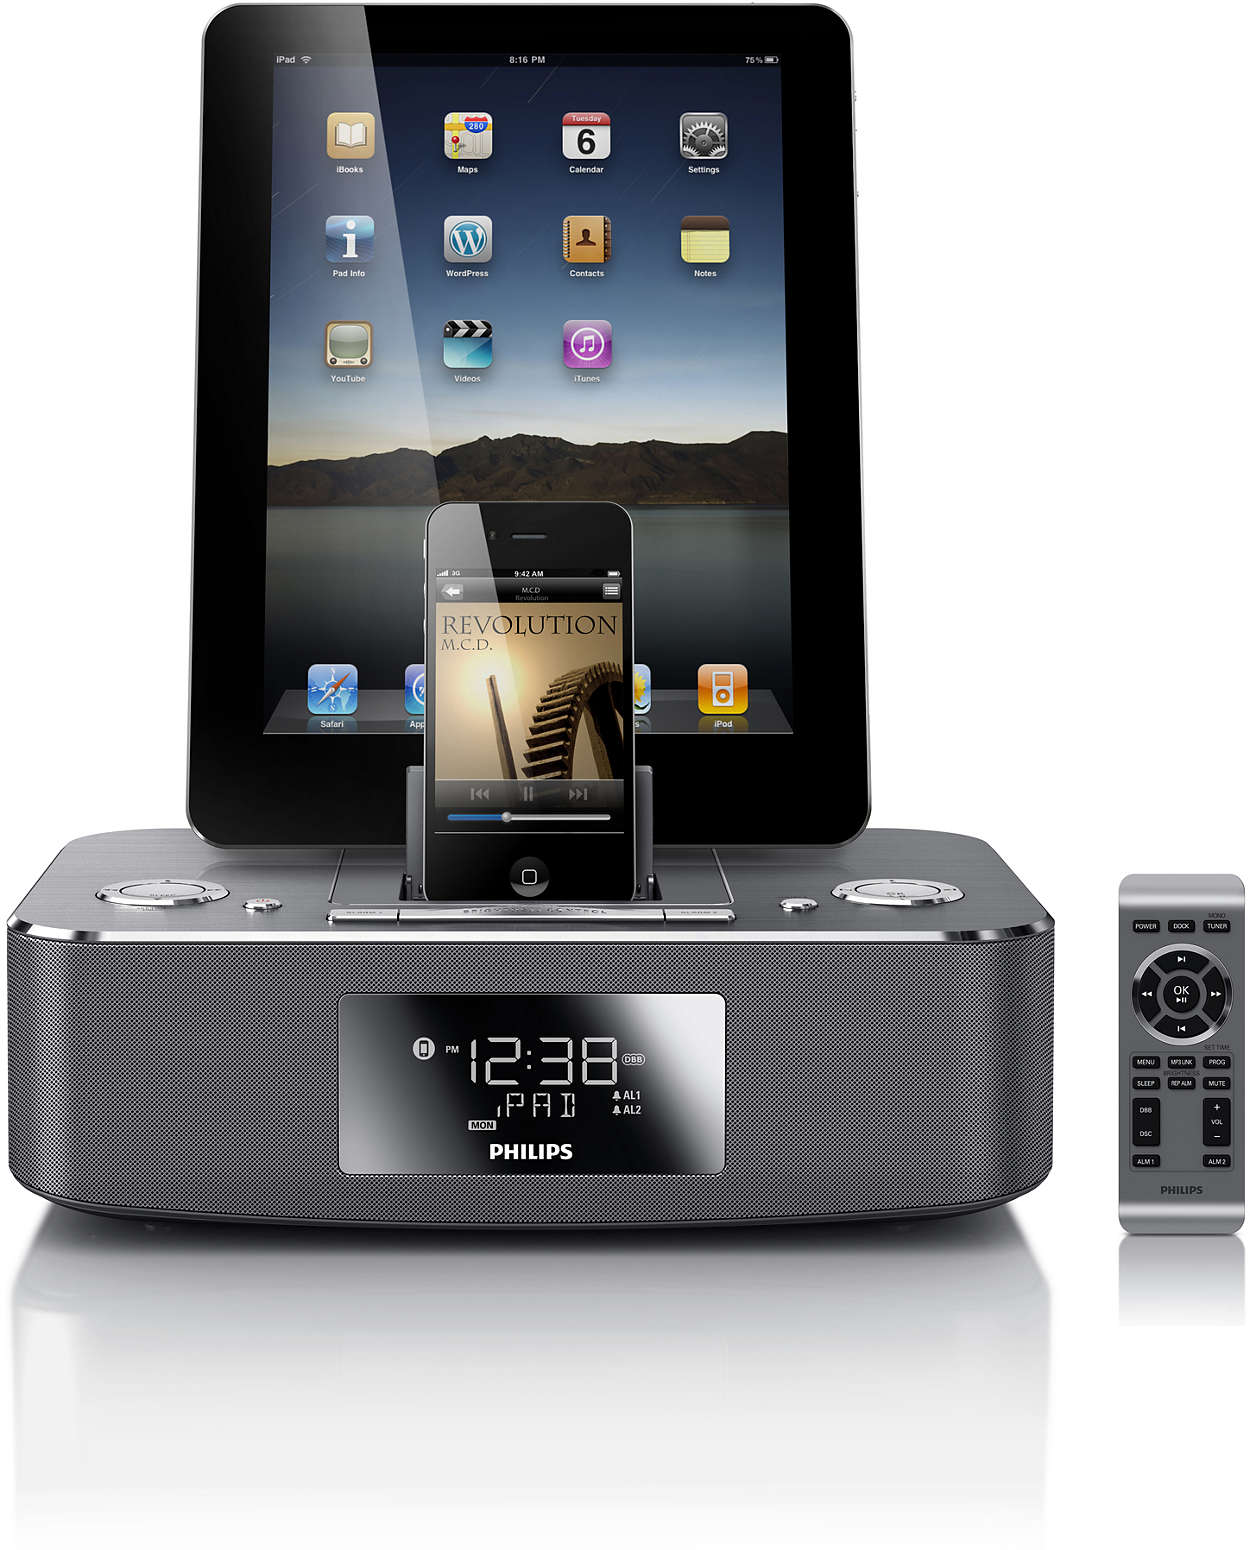 dockingstation f r ipod iphone ipad dc390 12 philips. Black Bedroom Furniture Sets. Home Design Ideas